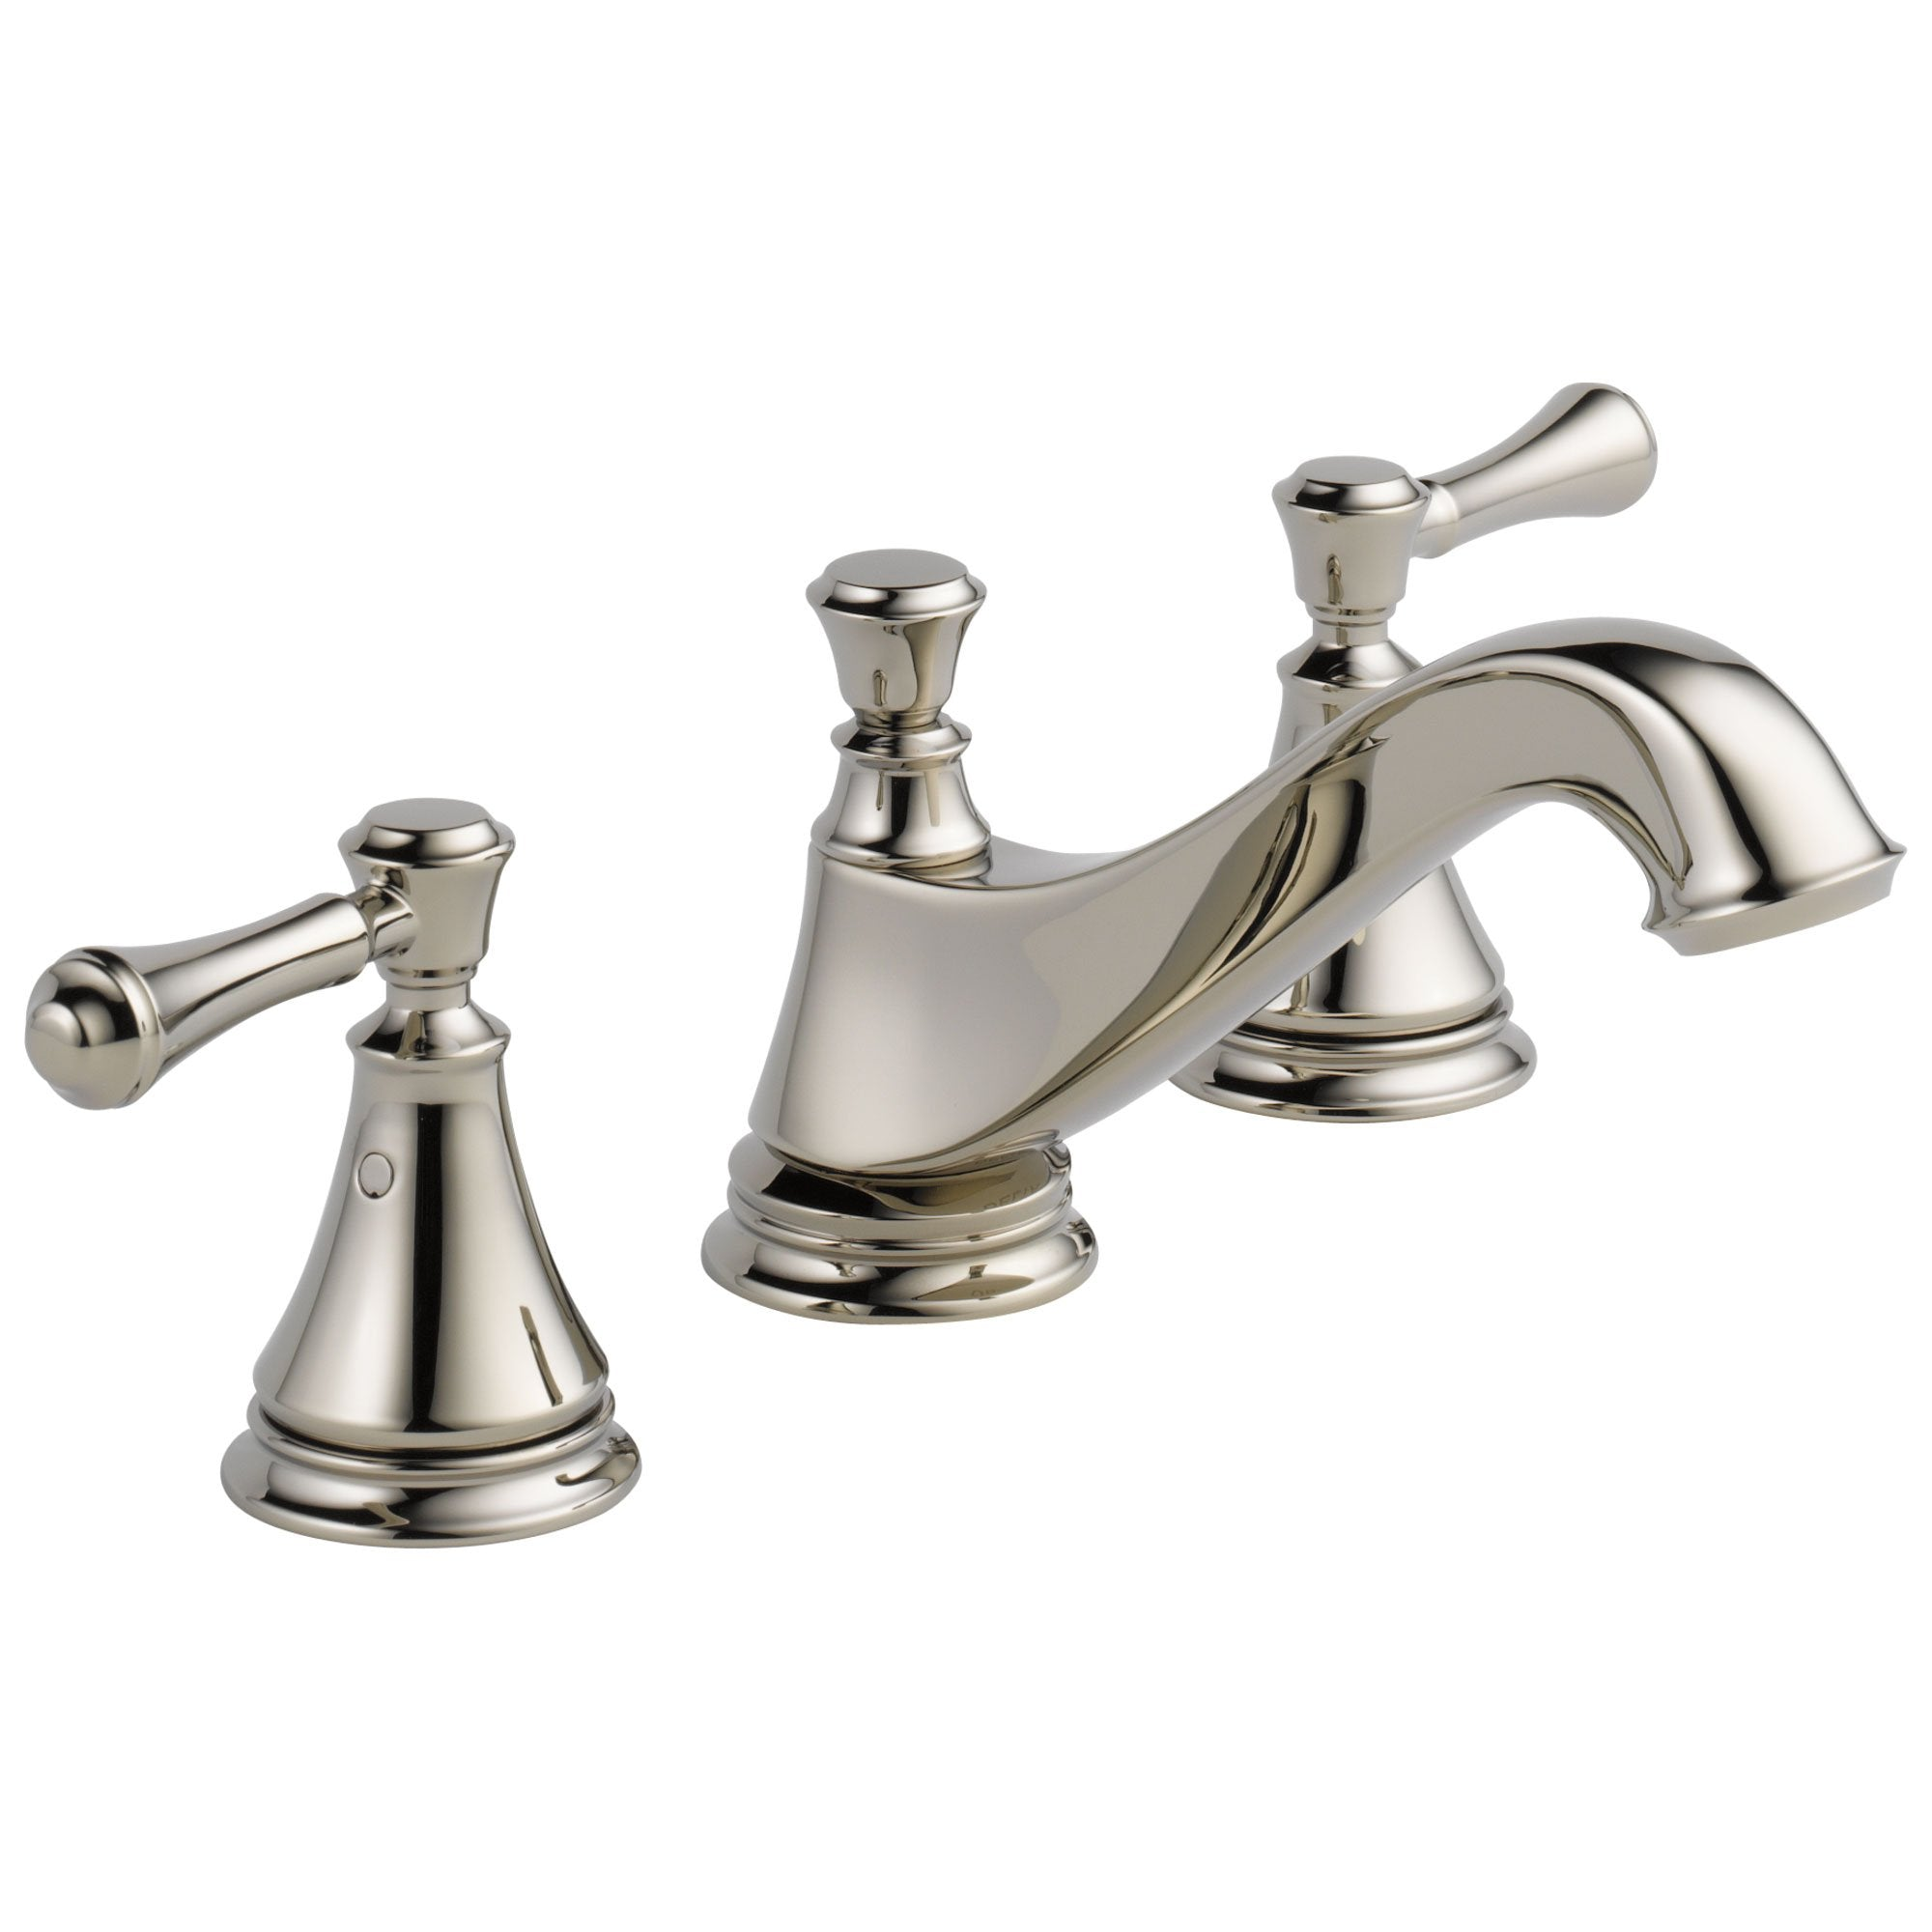 Delta Cassidy Collection Polished Nickel Traditional Low Spout Widespread Bathroom Sink Faucet INCLUDES Two Lever Handles and Drain D1793V